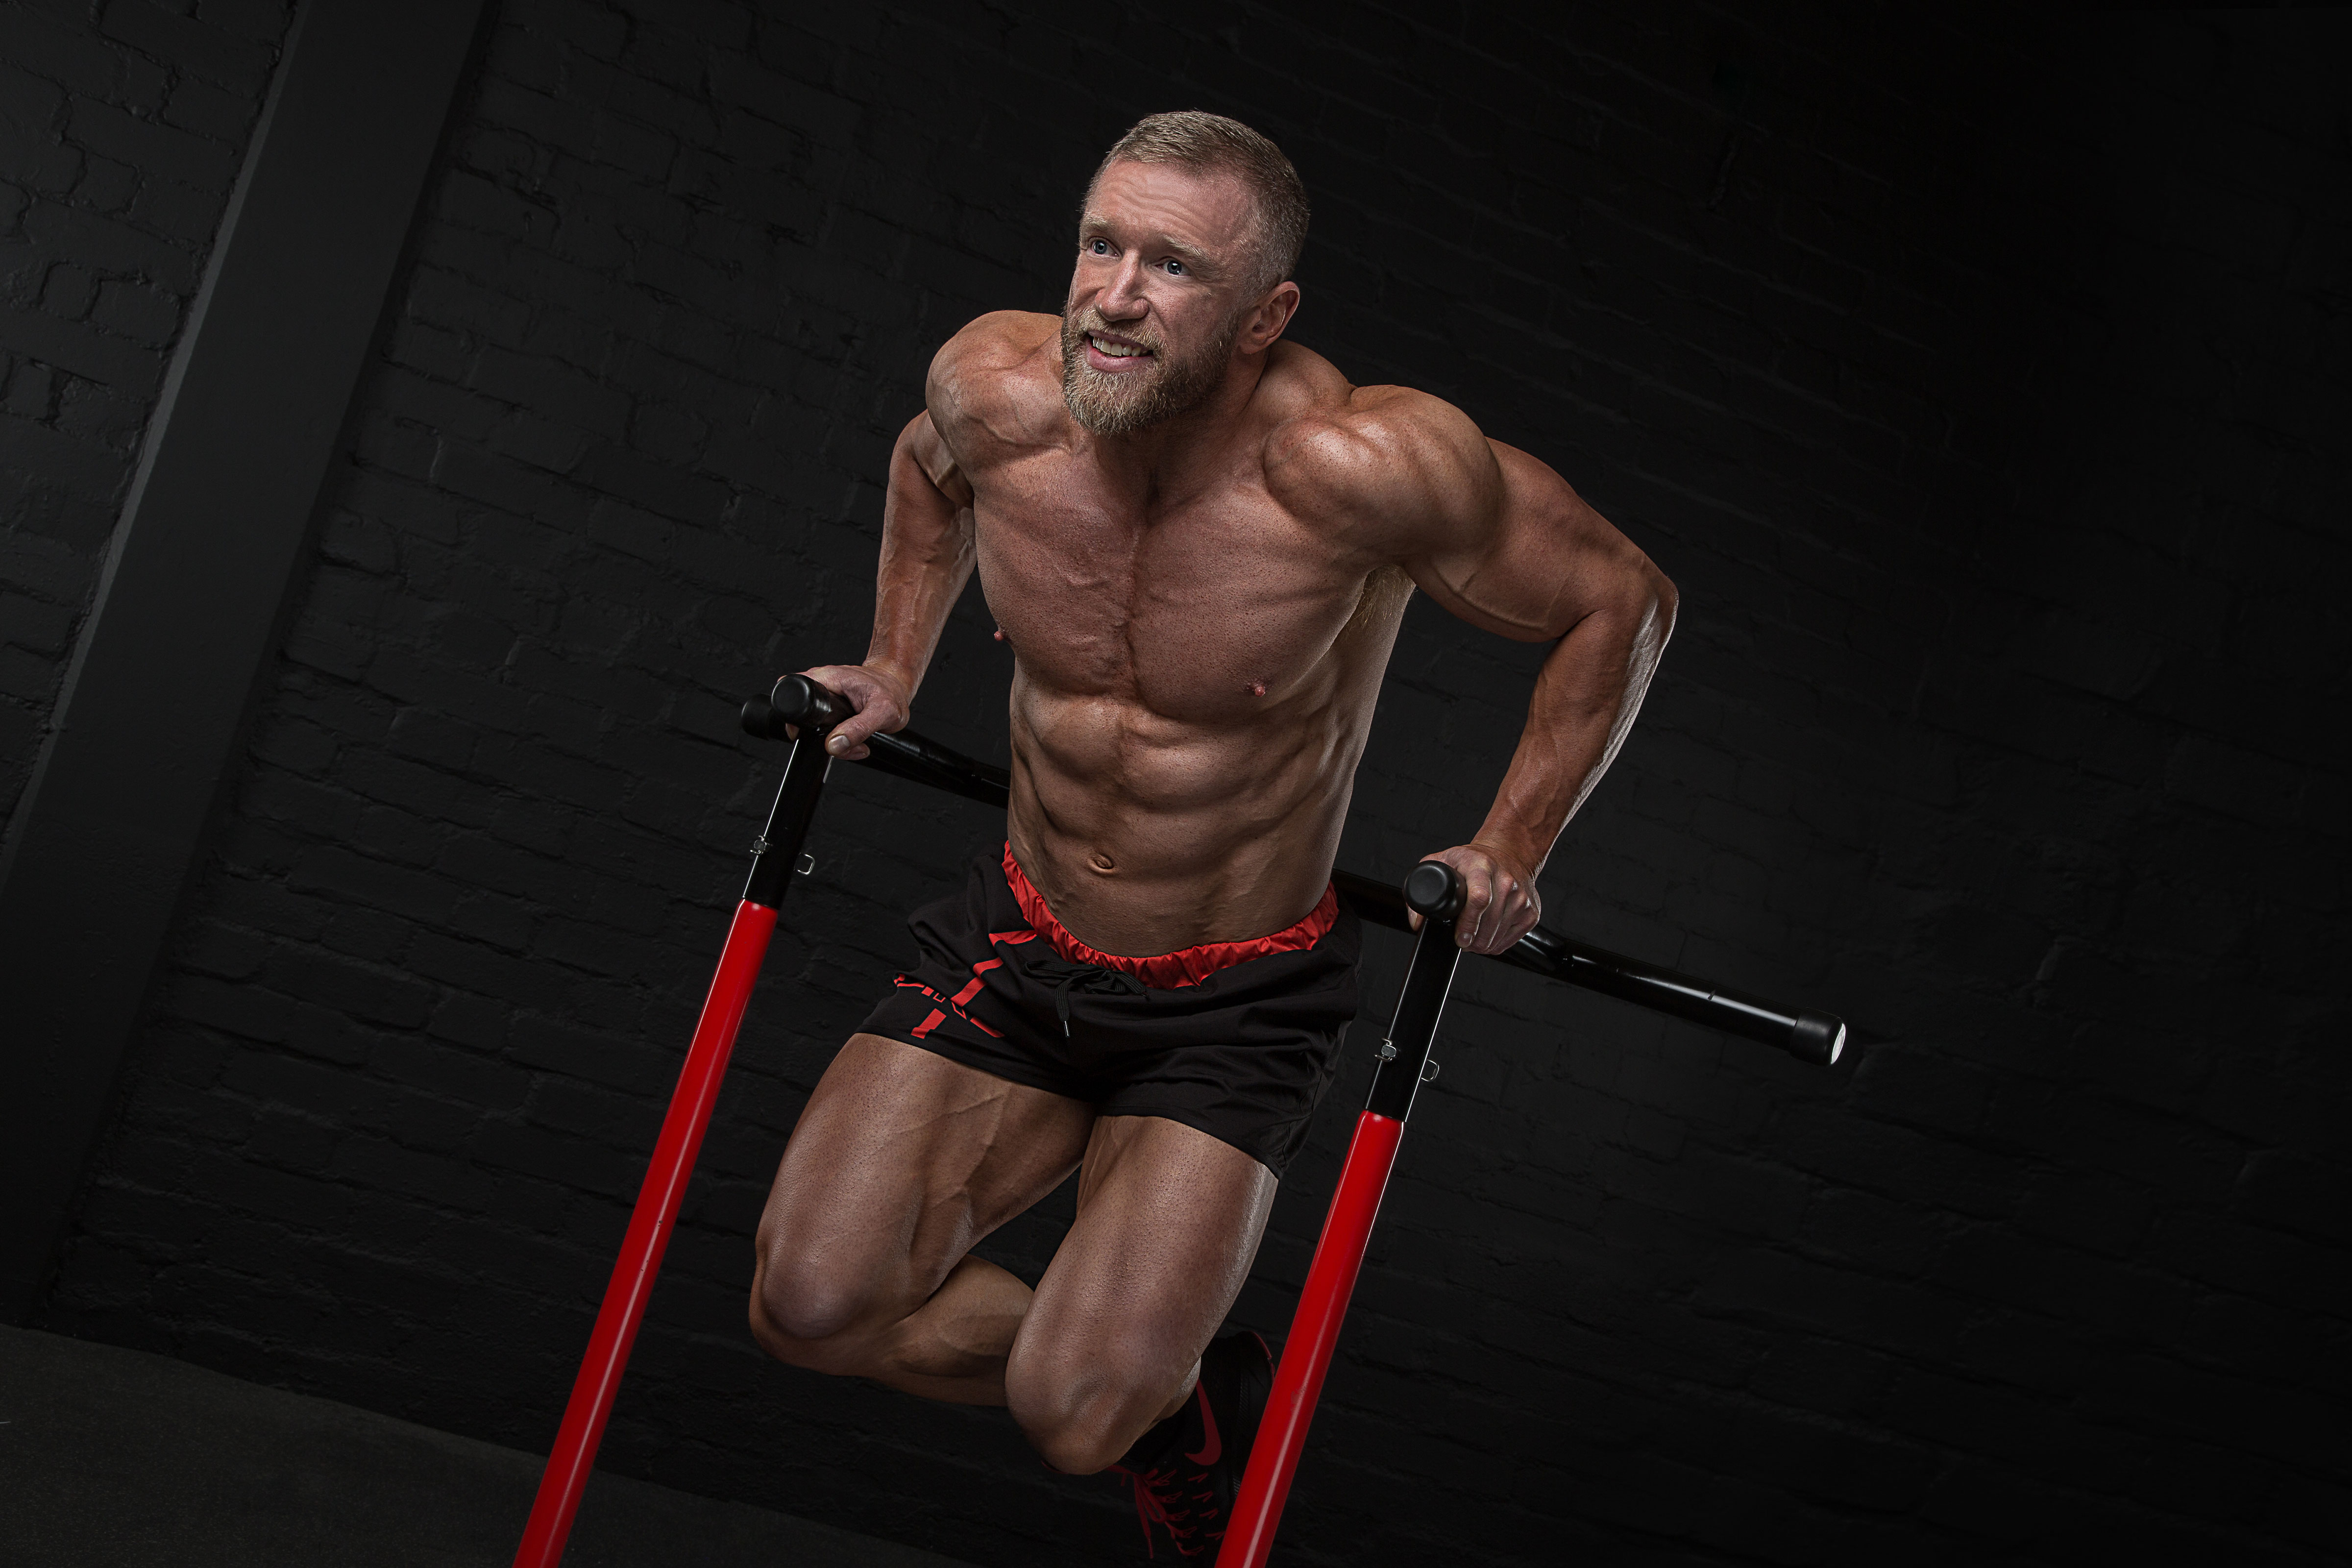 http://Bodybuilding%20Photography